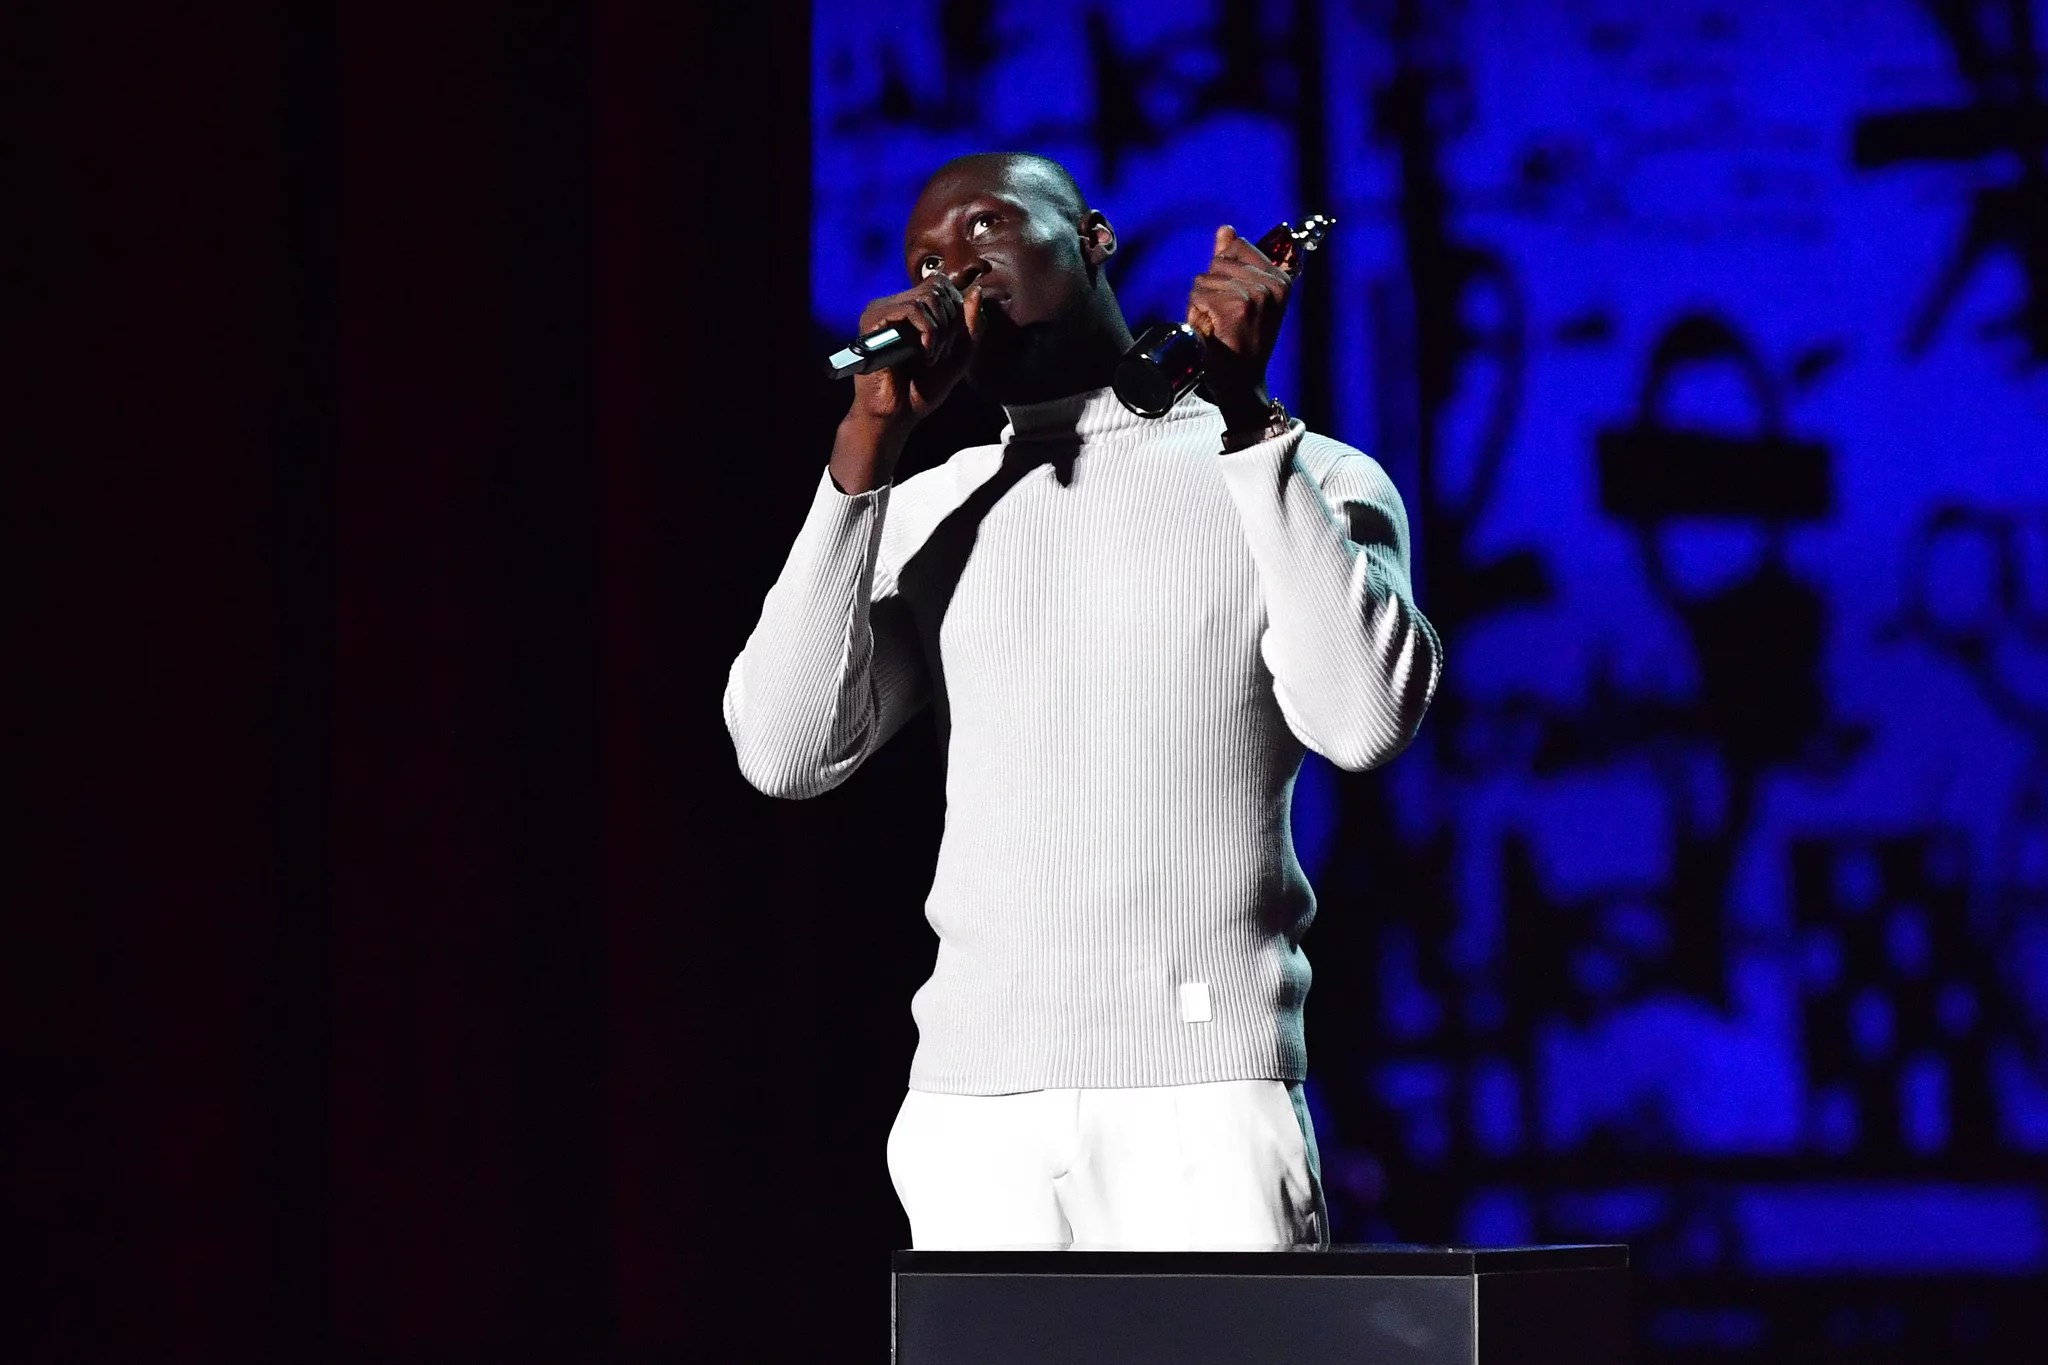 LONDON, ENGLAND - FEBRUARY 18: (EDITORIAL USE ONLY) Stormzy accepts the Best Male Solo Artist award during The BRIT Awards 2020 at The O2 Arena on February 18, 2020 in London, England. (Photo by Gareth Cattermole/Getty Images)